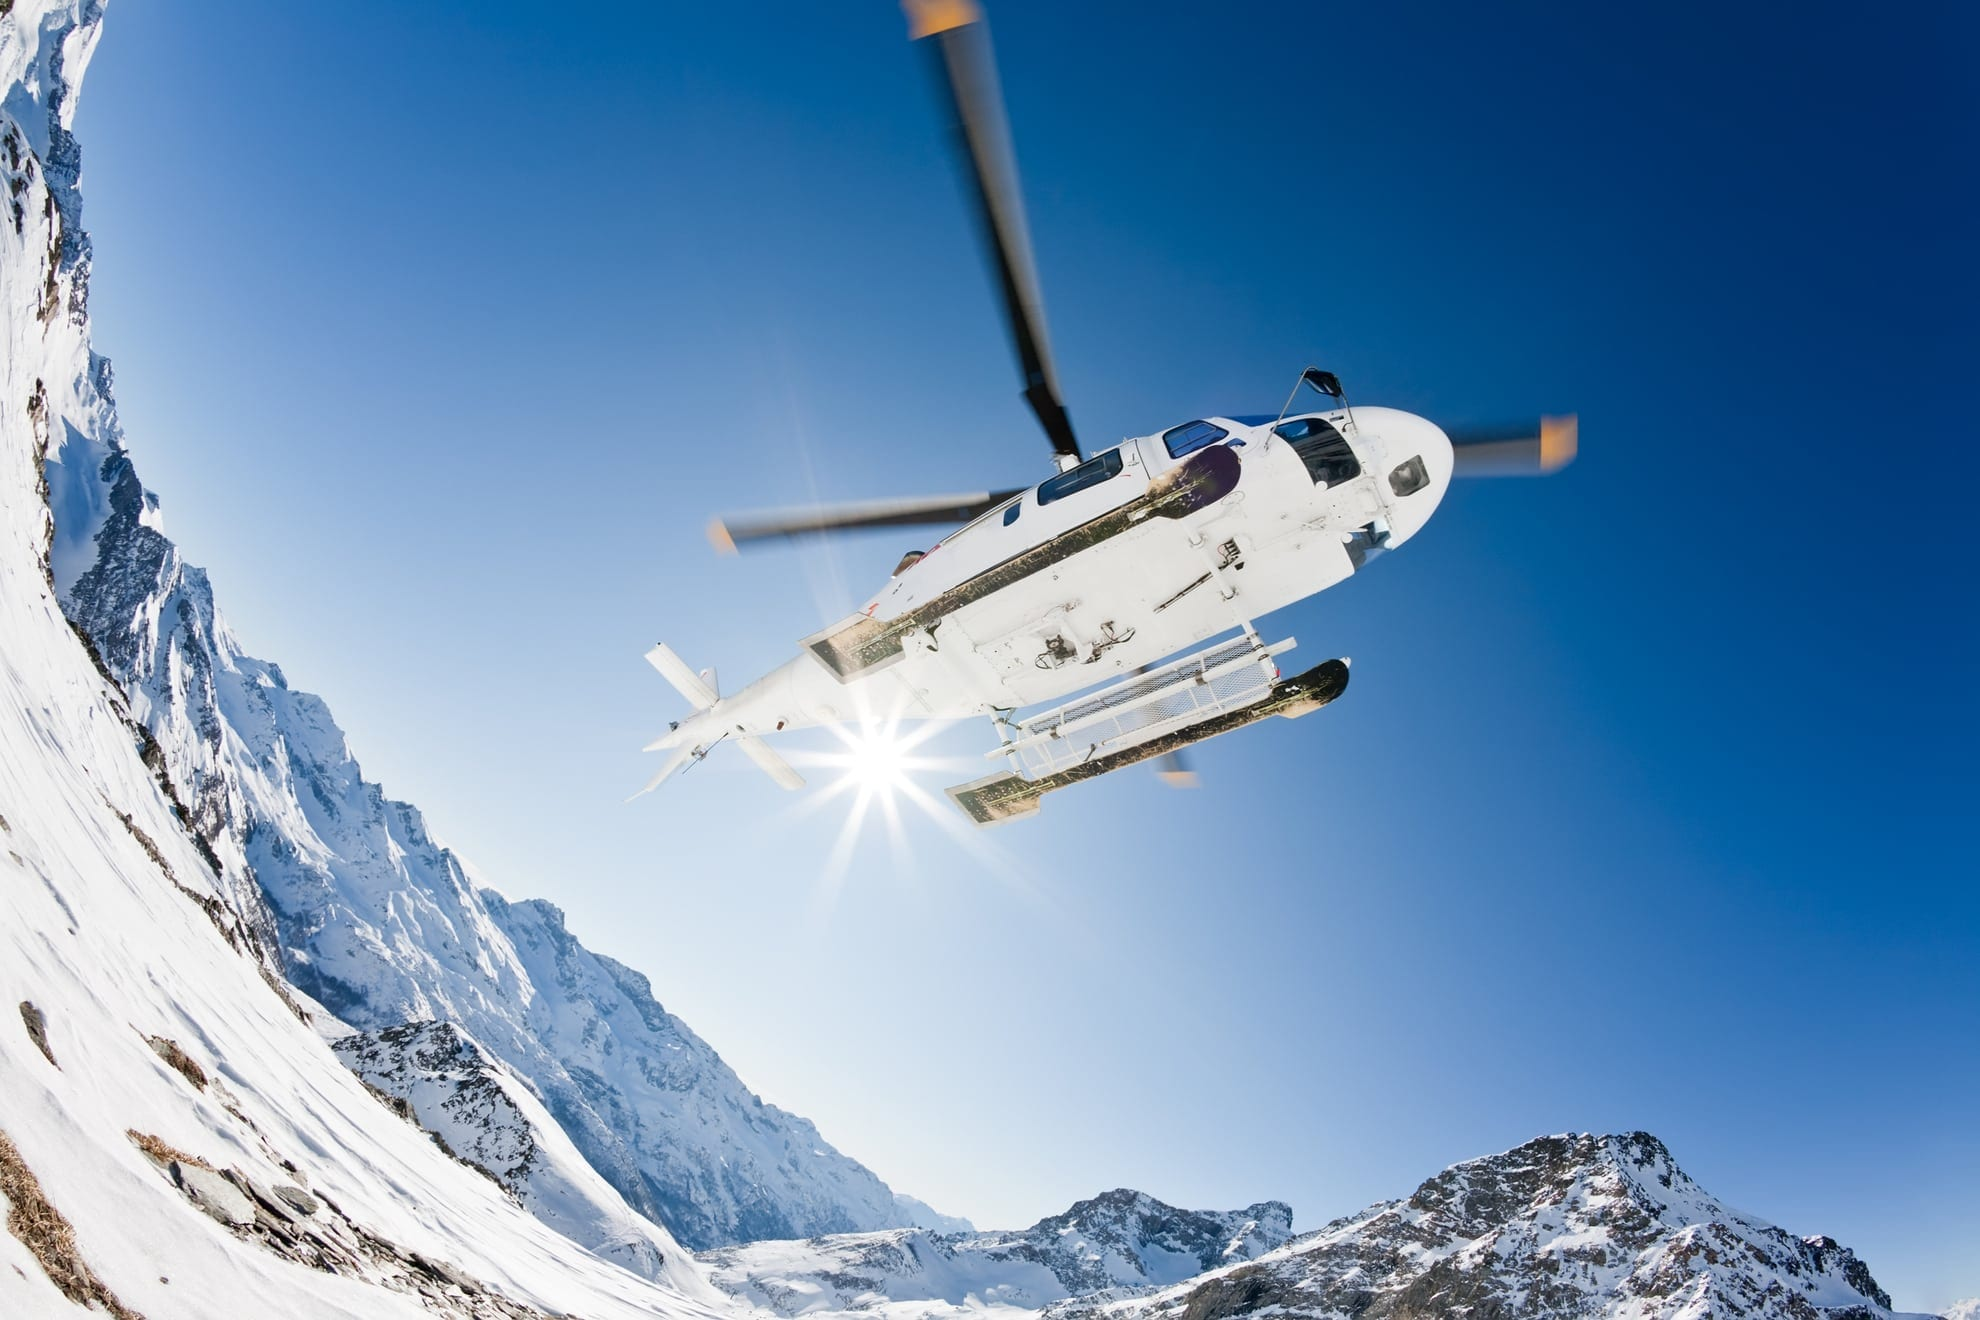 Helicopter-skien